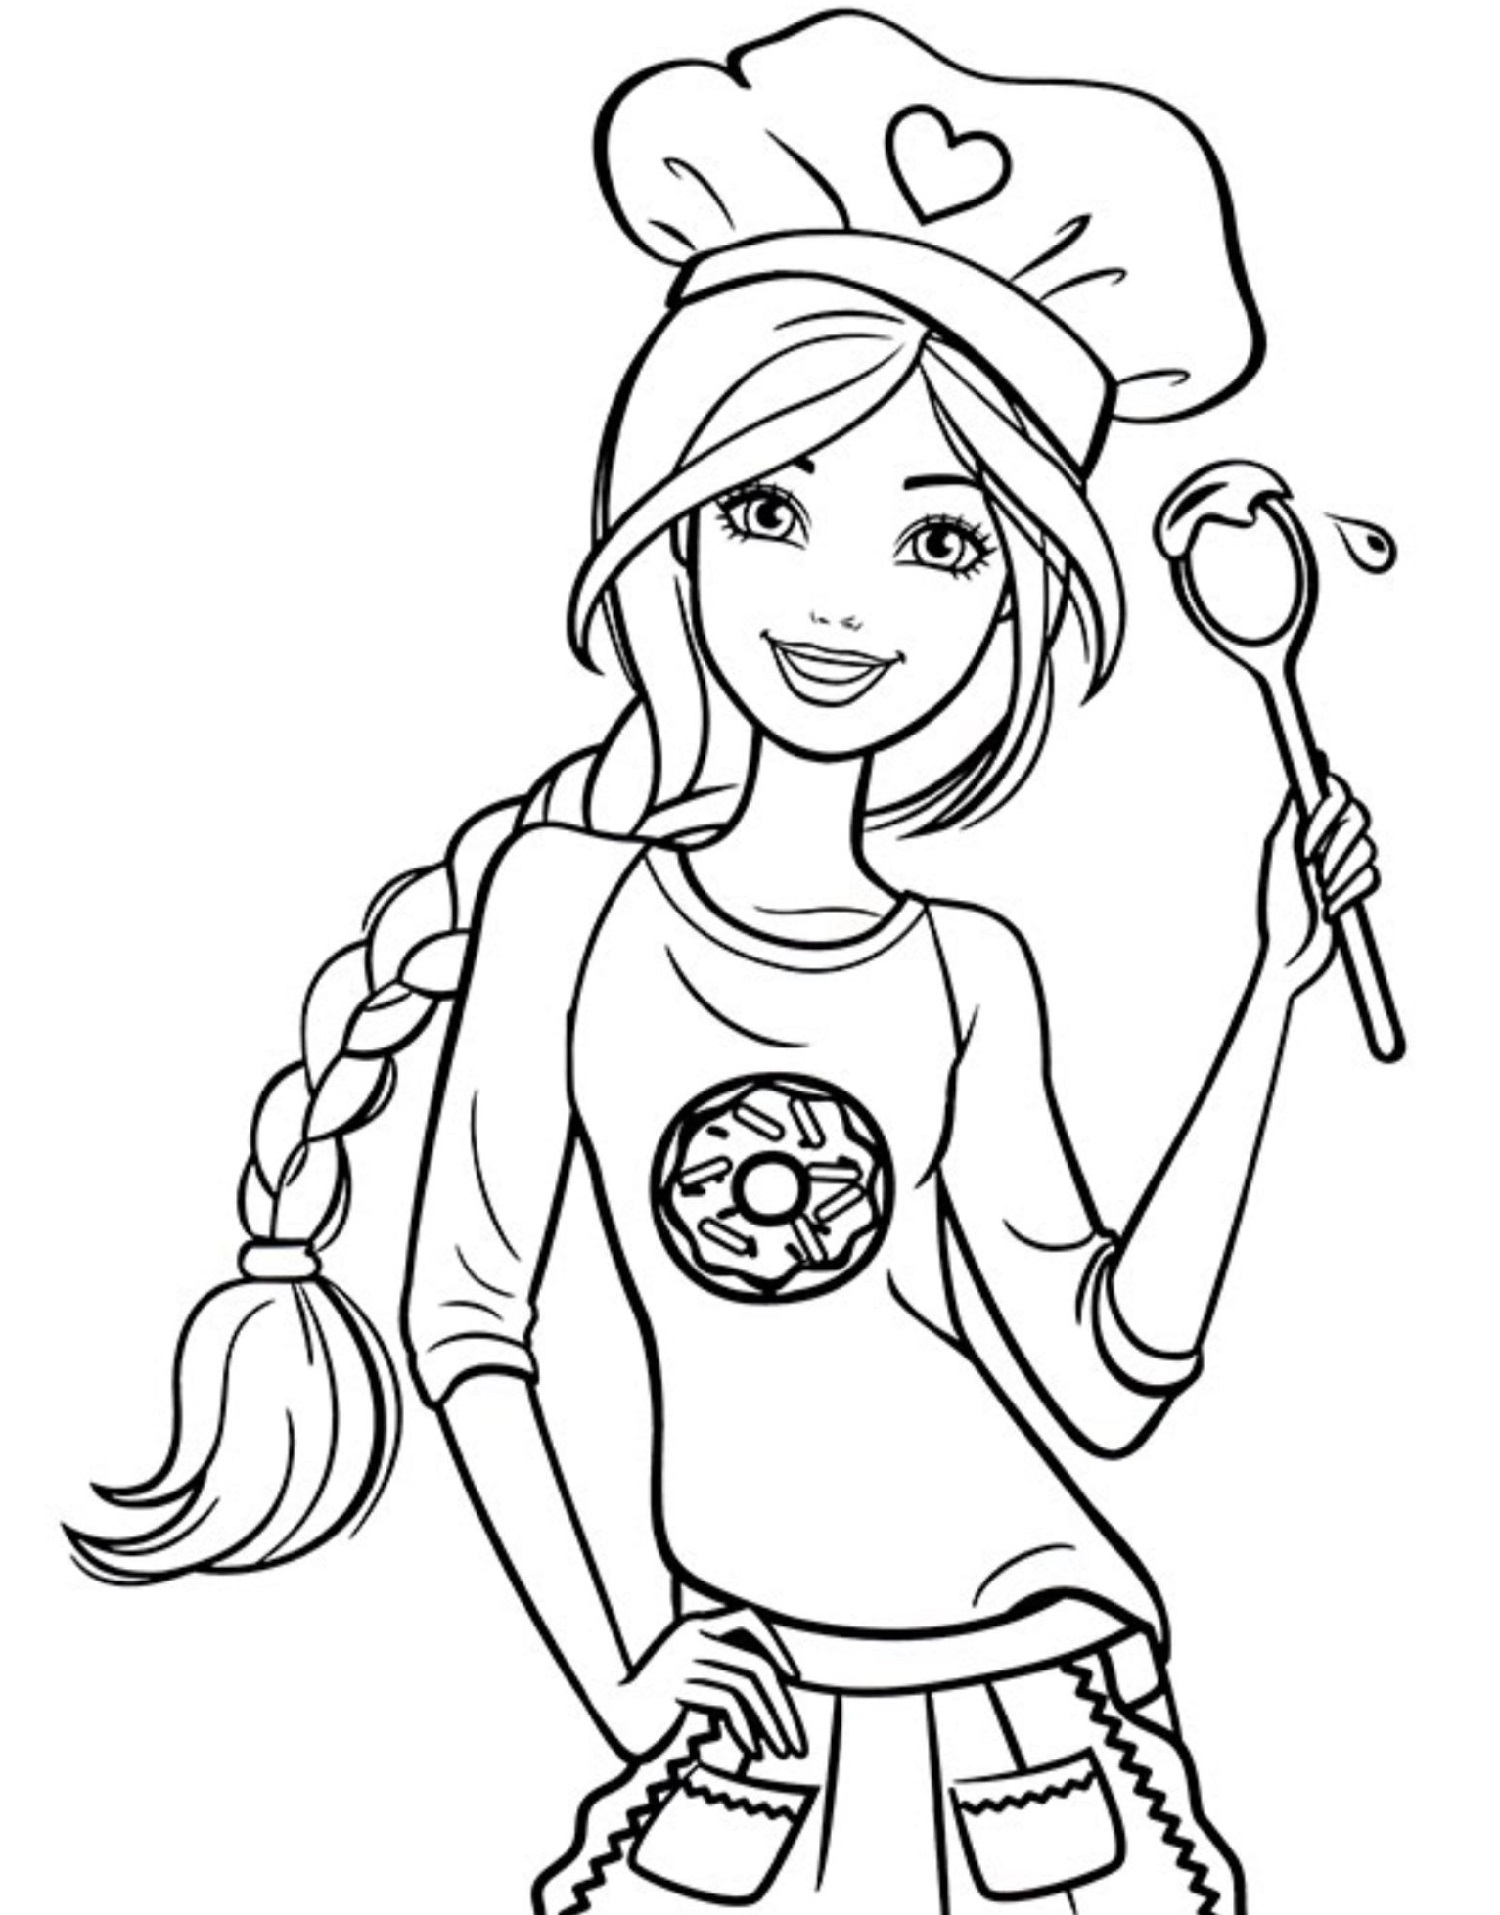 barbie printables 85 barbie coloring pages for girls barbie princess barbie printables 1 1